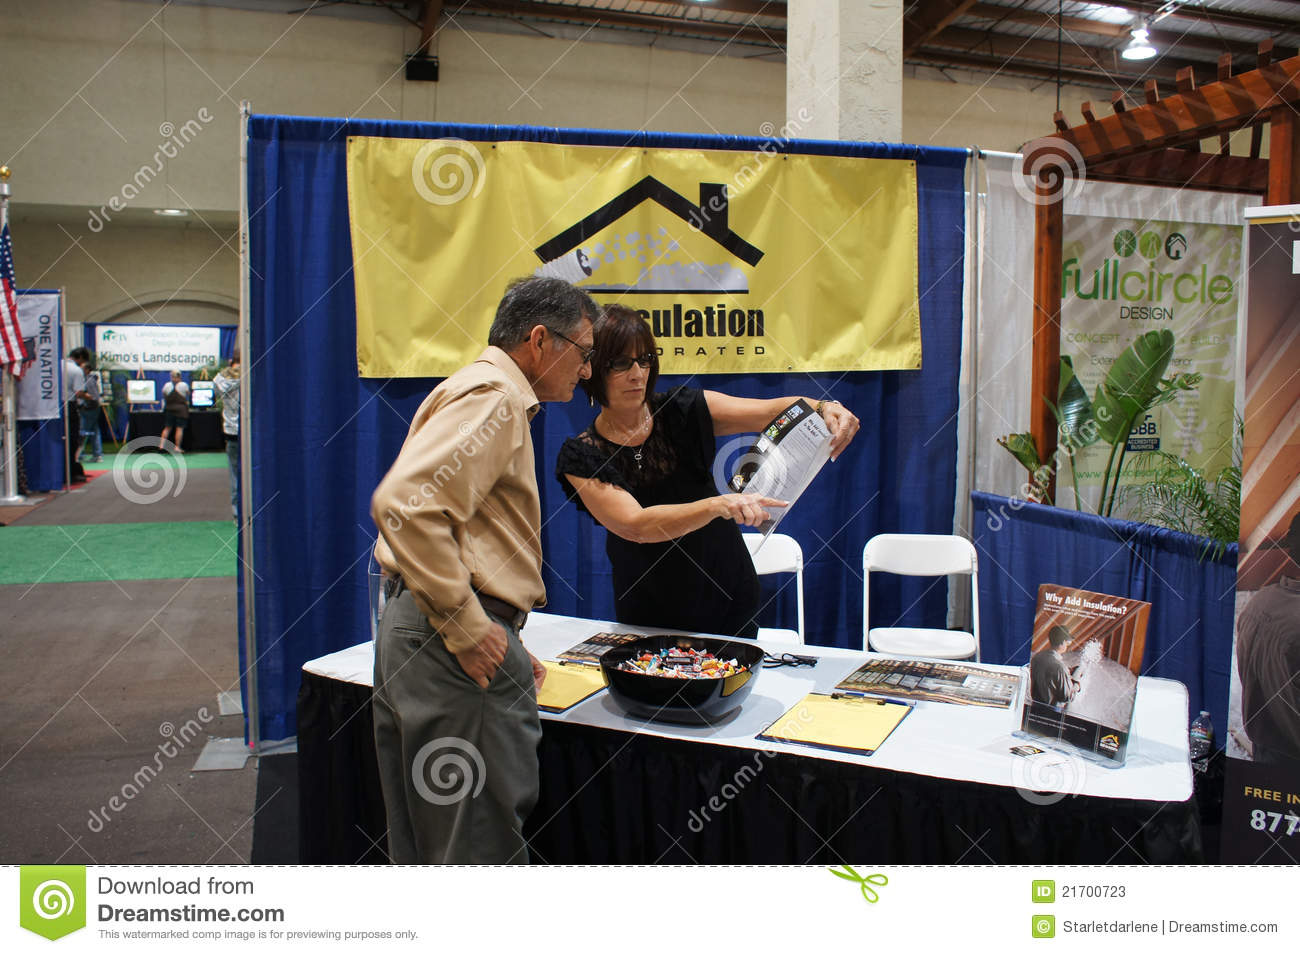 home and garden showtrade show editorial stock photo - Home And Garden Trade Shows